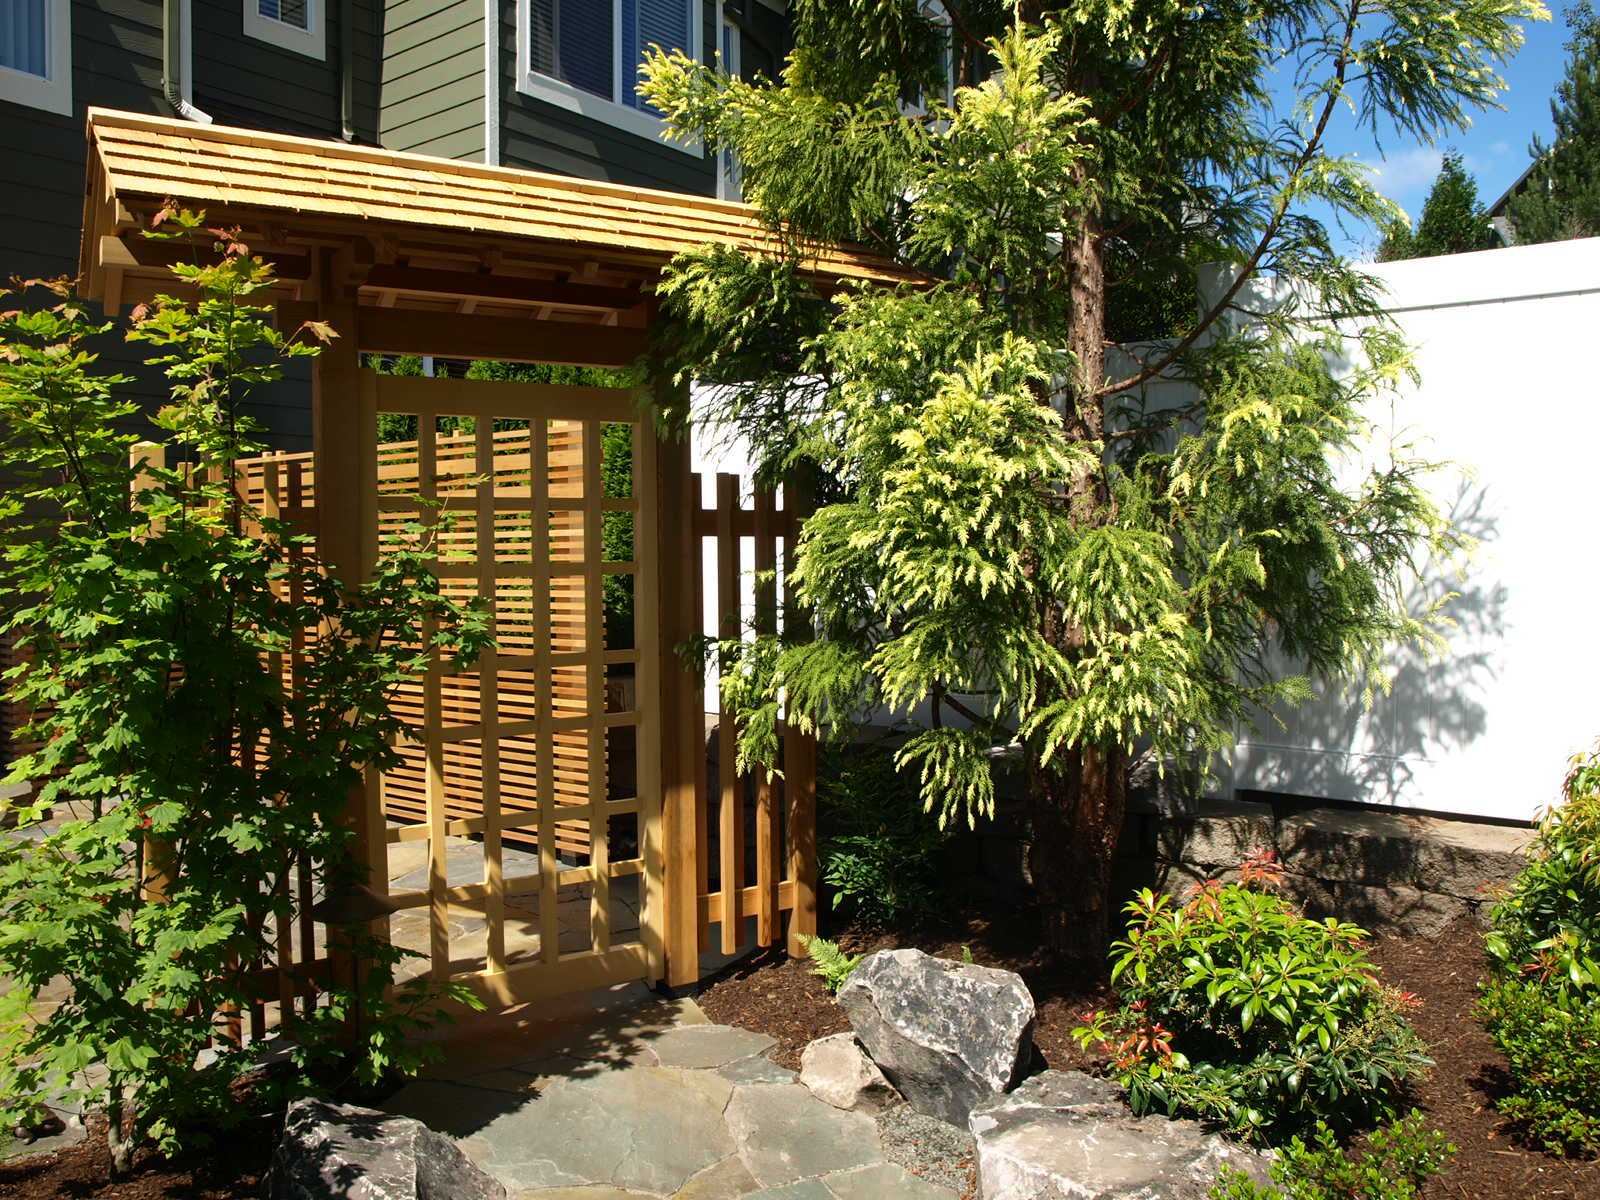 One of our landscape installations, with a design by Mike Ellena.